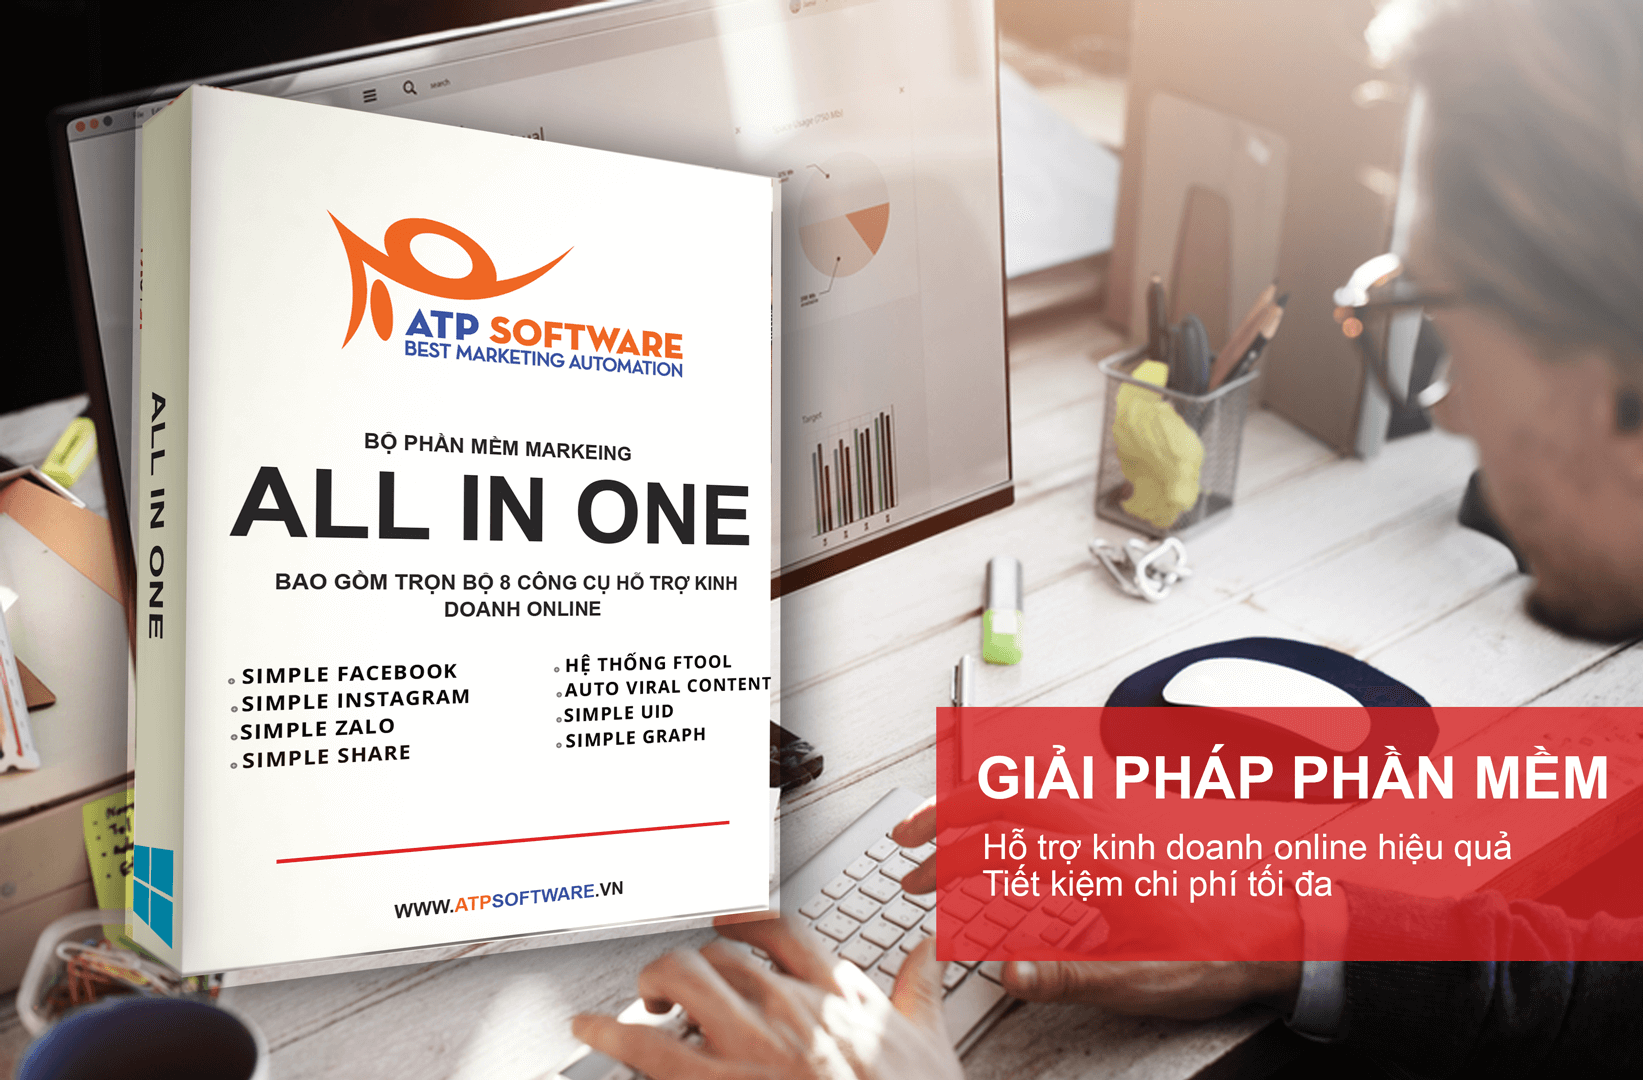 Phan mem marketing All-in-one ATP software